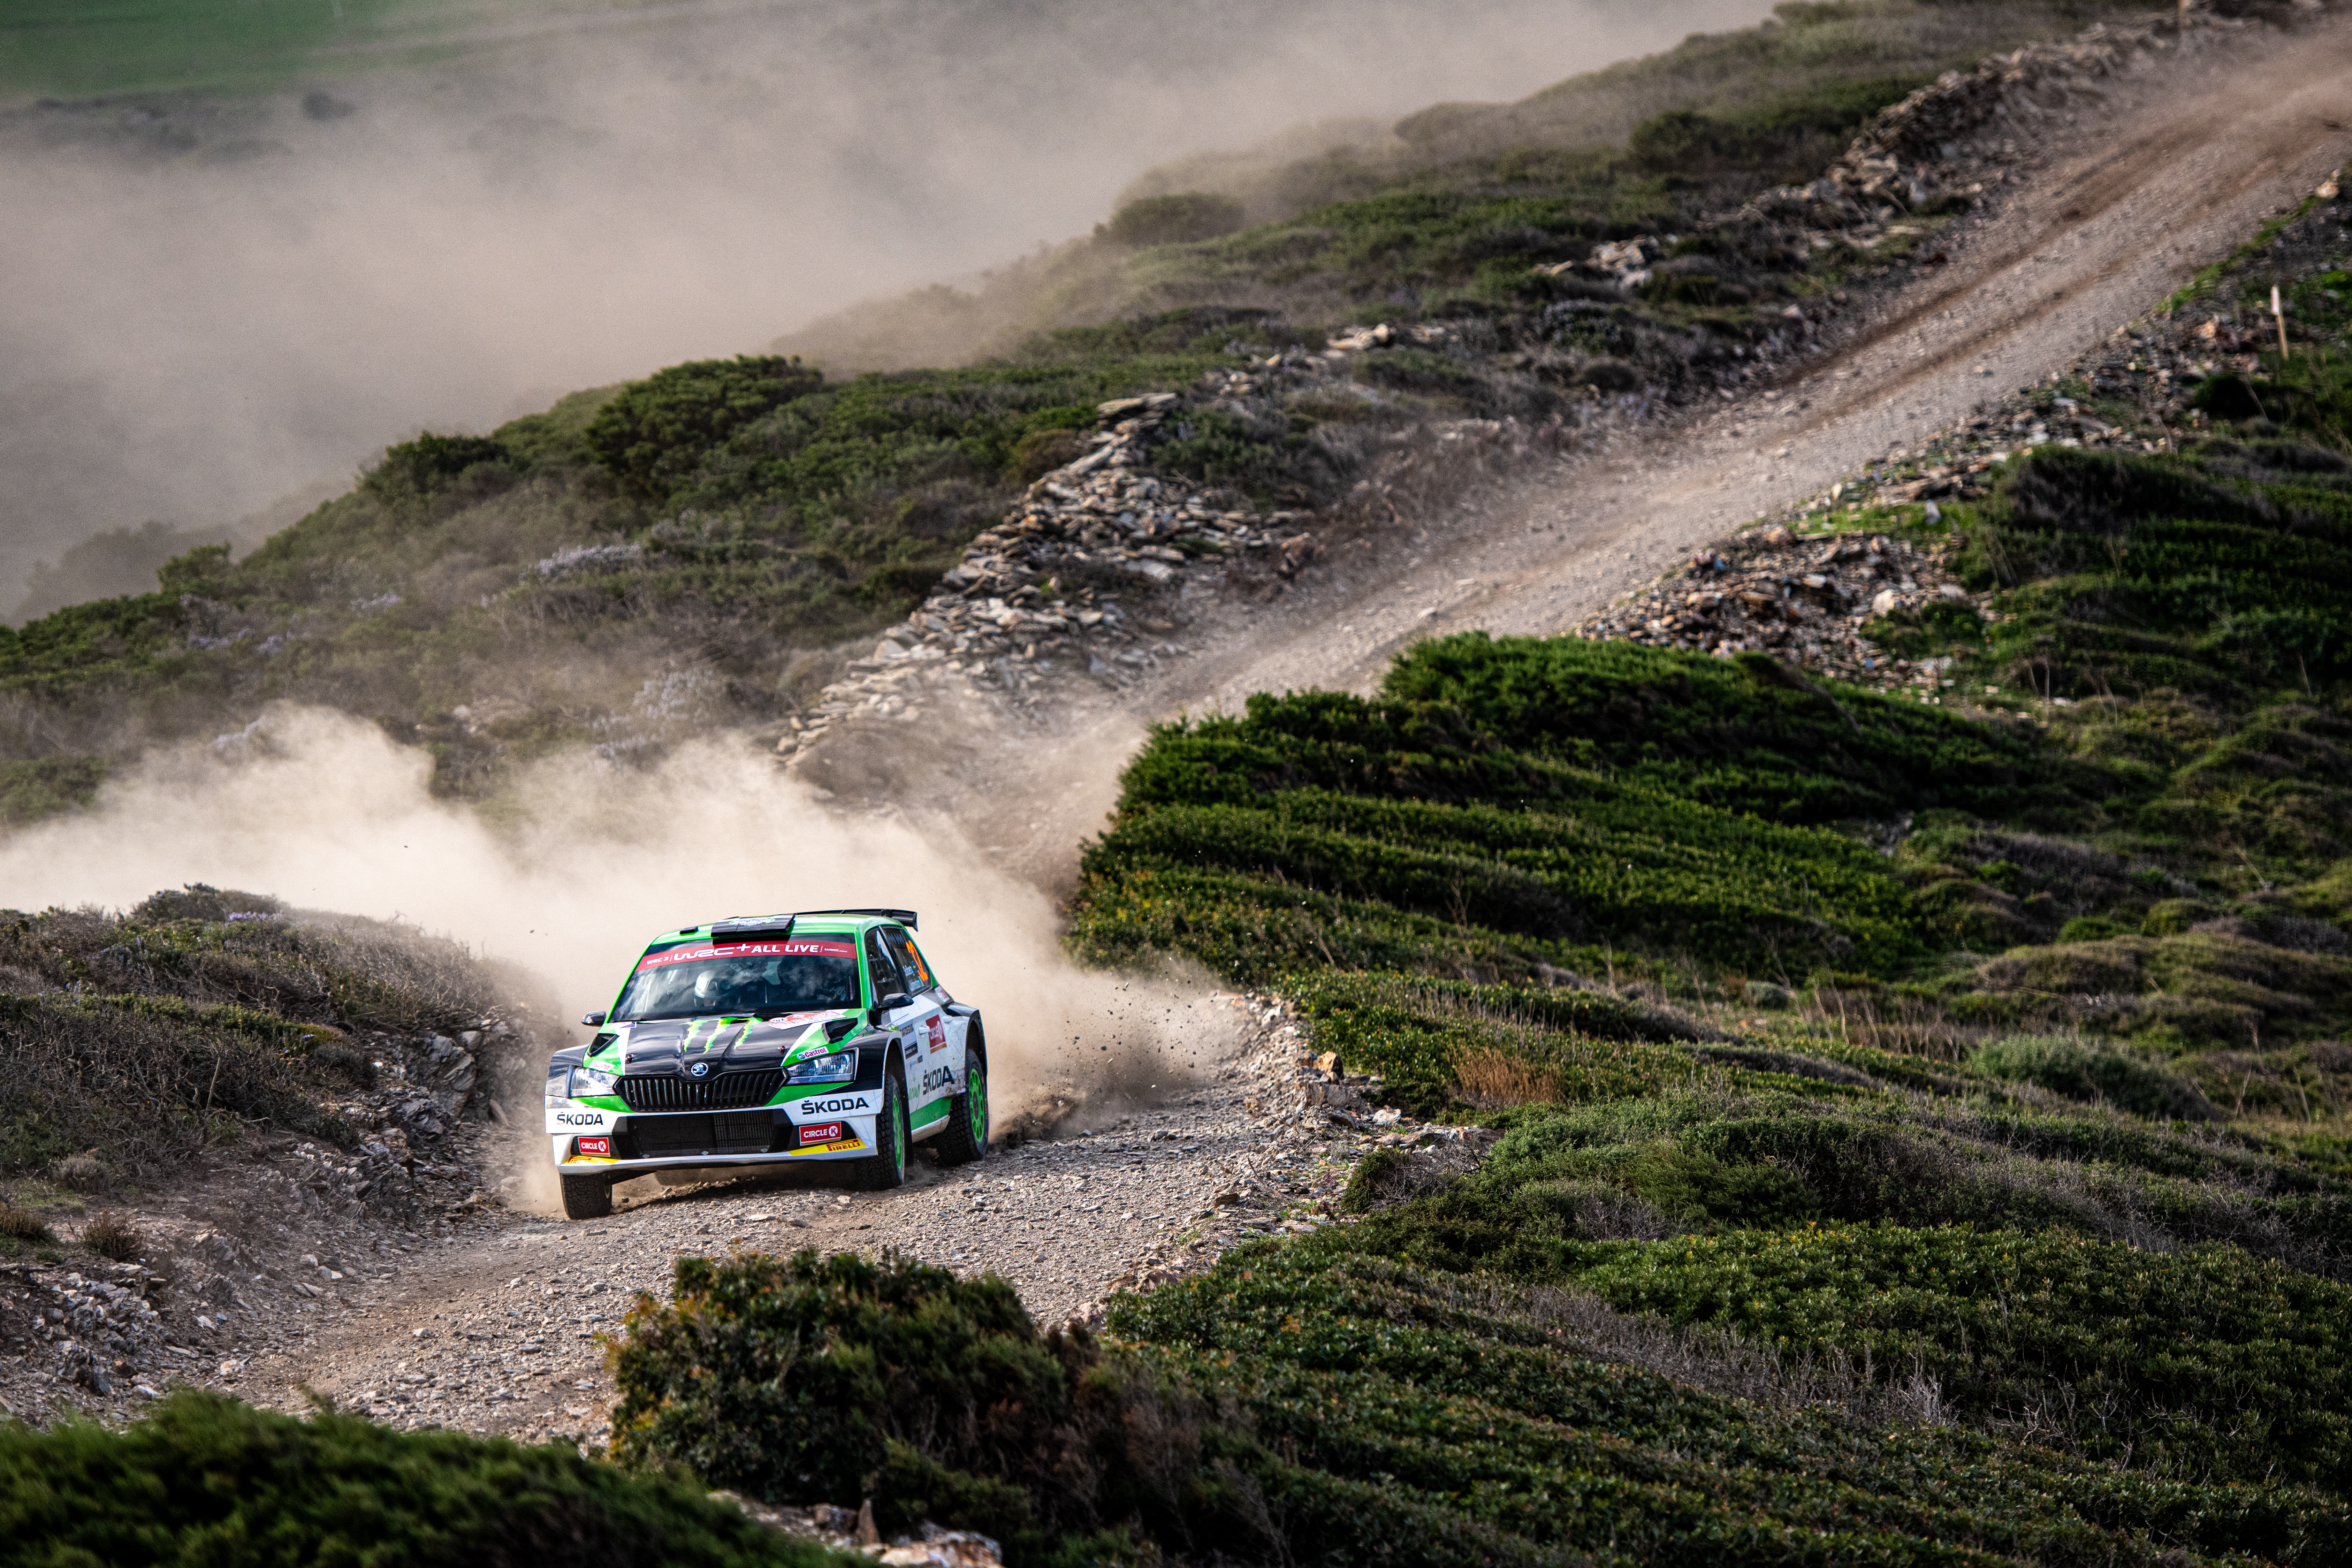 Rally Italia Sardegna: SKODA privateer Pontus Tidemand wins WRC2 and extends overall lead - Image 5